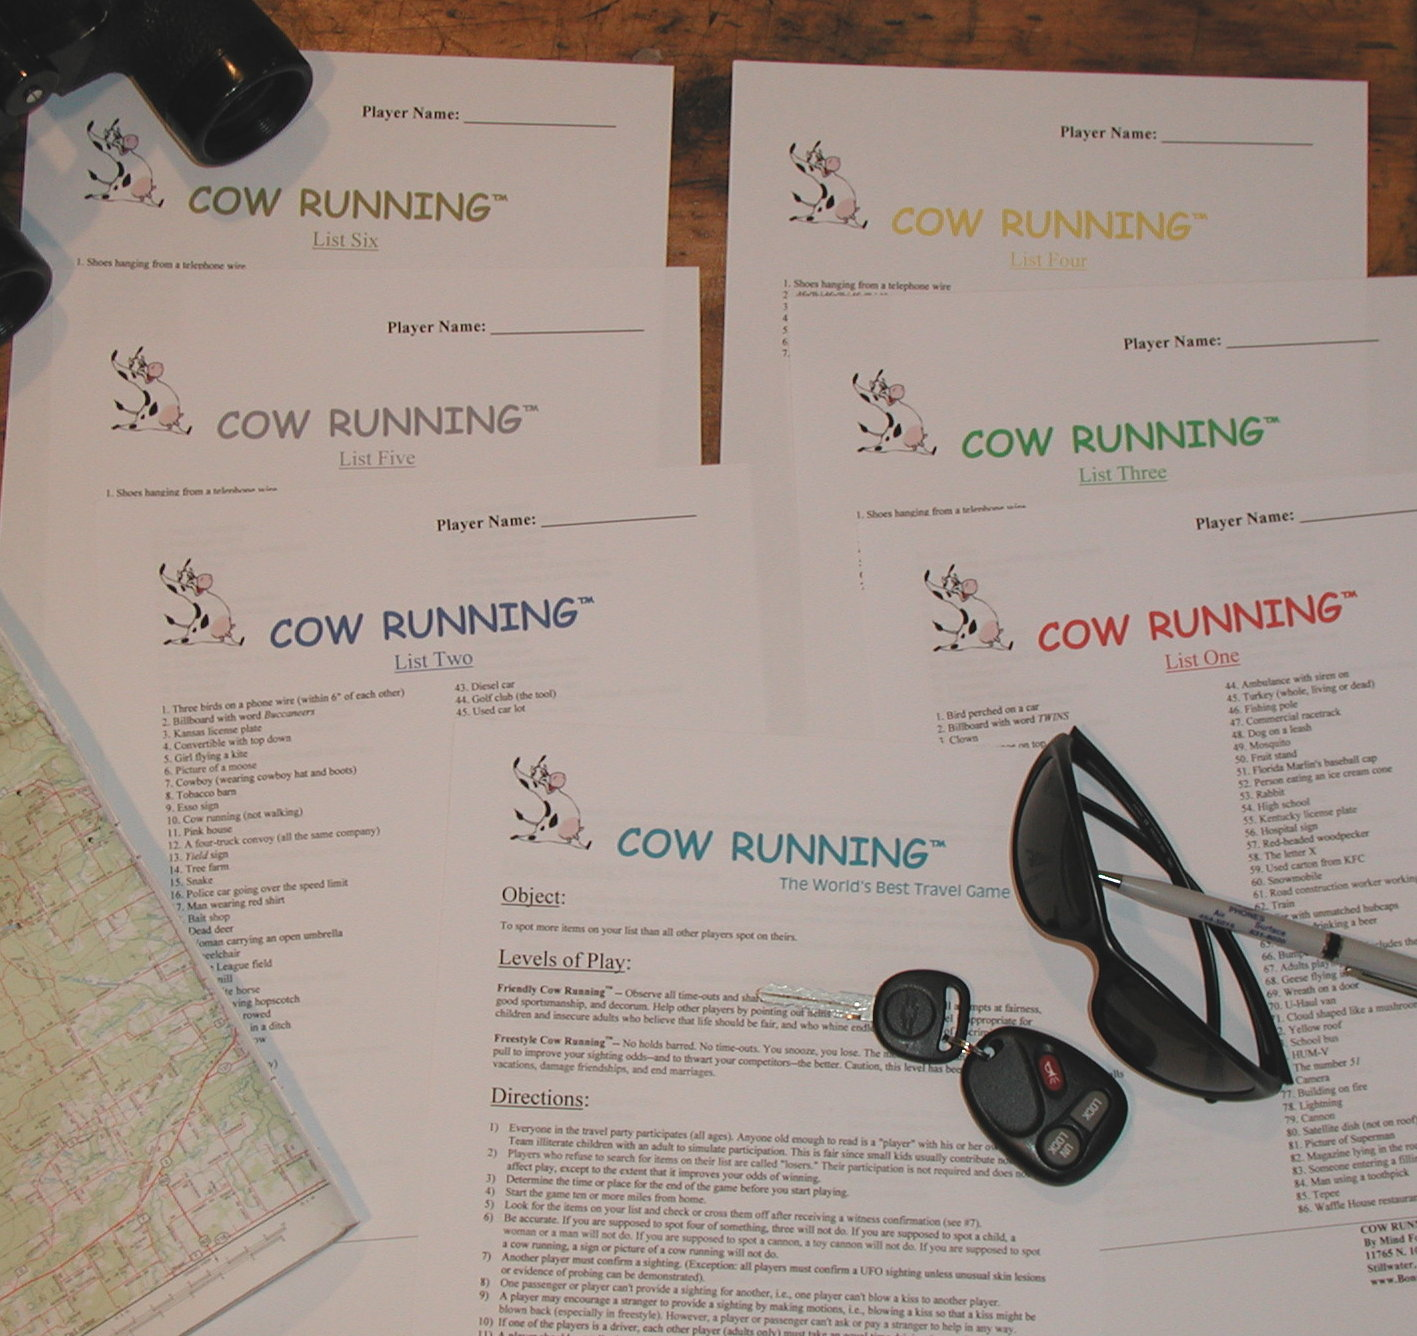 Cow Running -- the world's most popular travel game by C.B. Jonnes.